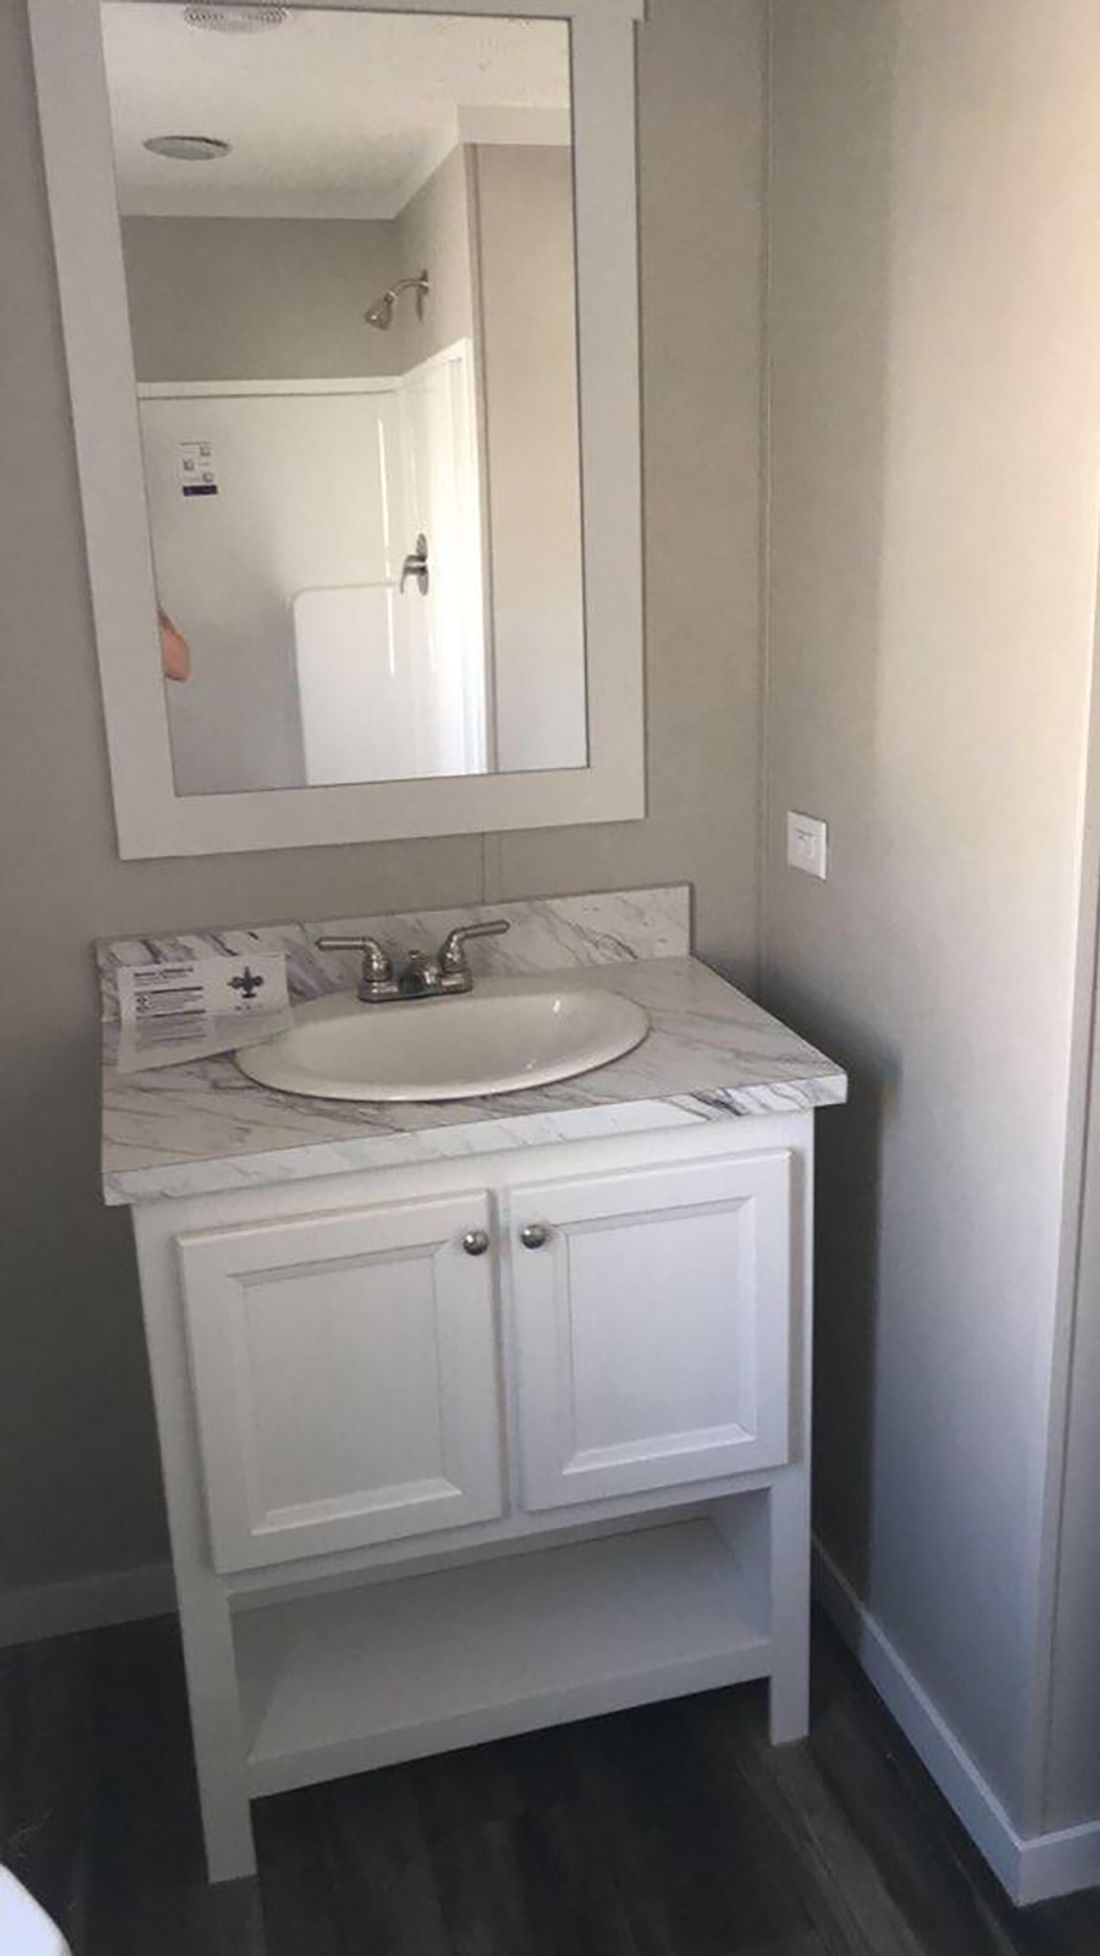 The THE MURPHY Guest Bathroom. This Manufactured Mobile Home features 1 bedroom and 1 bath.